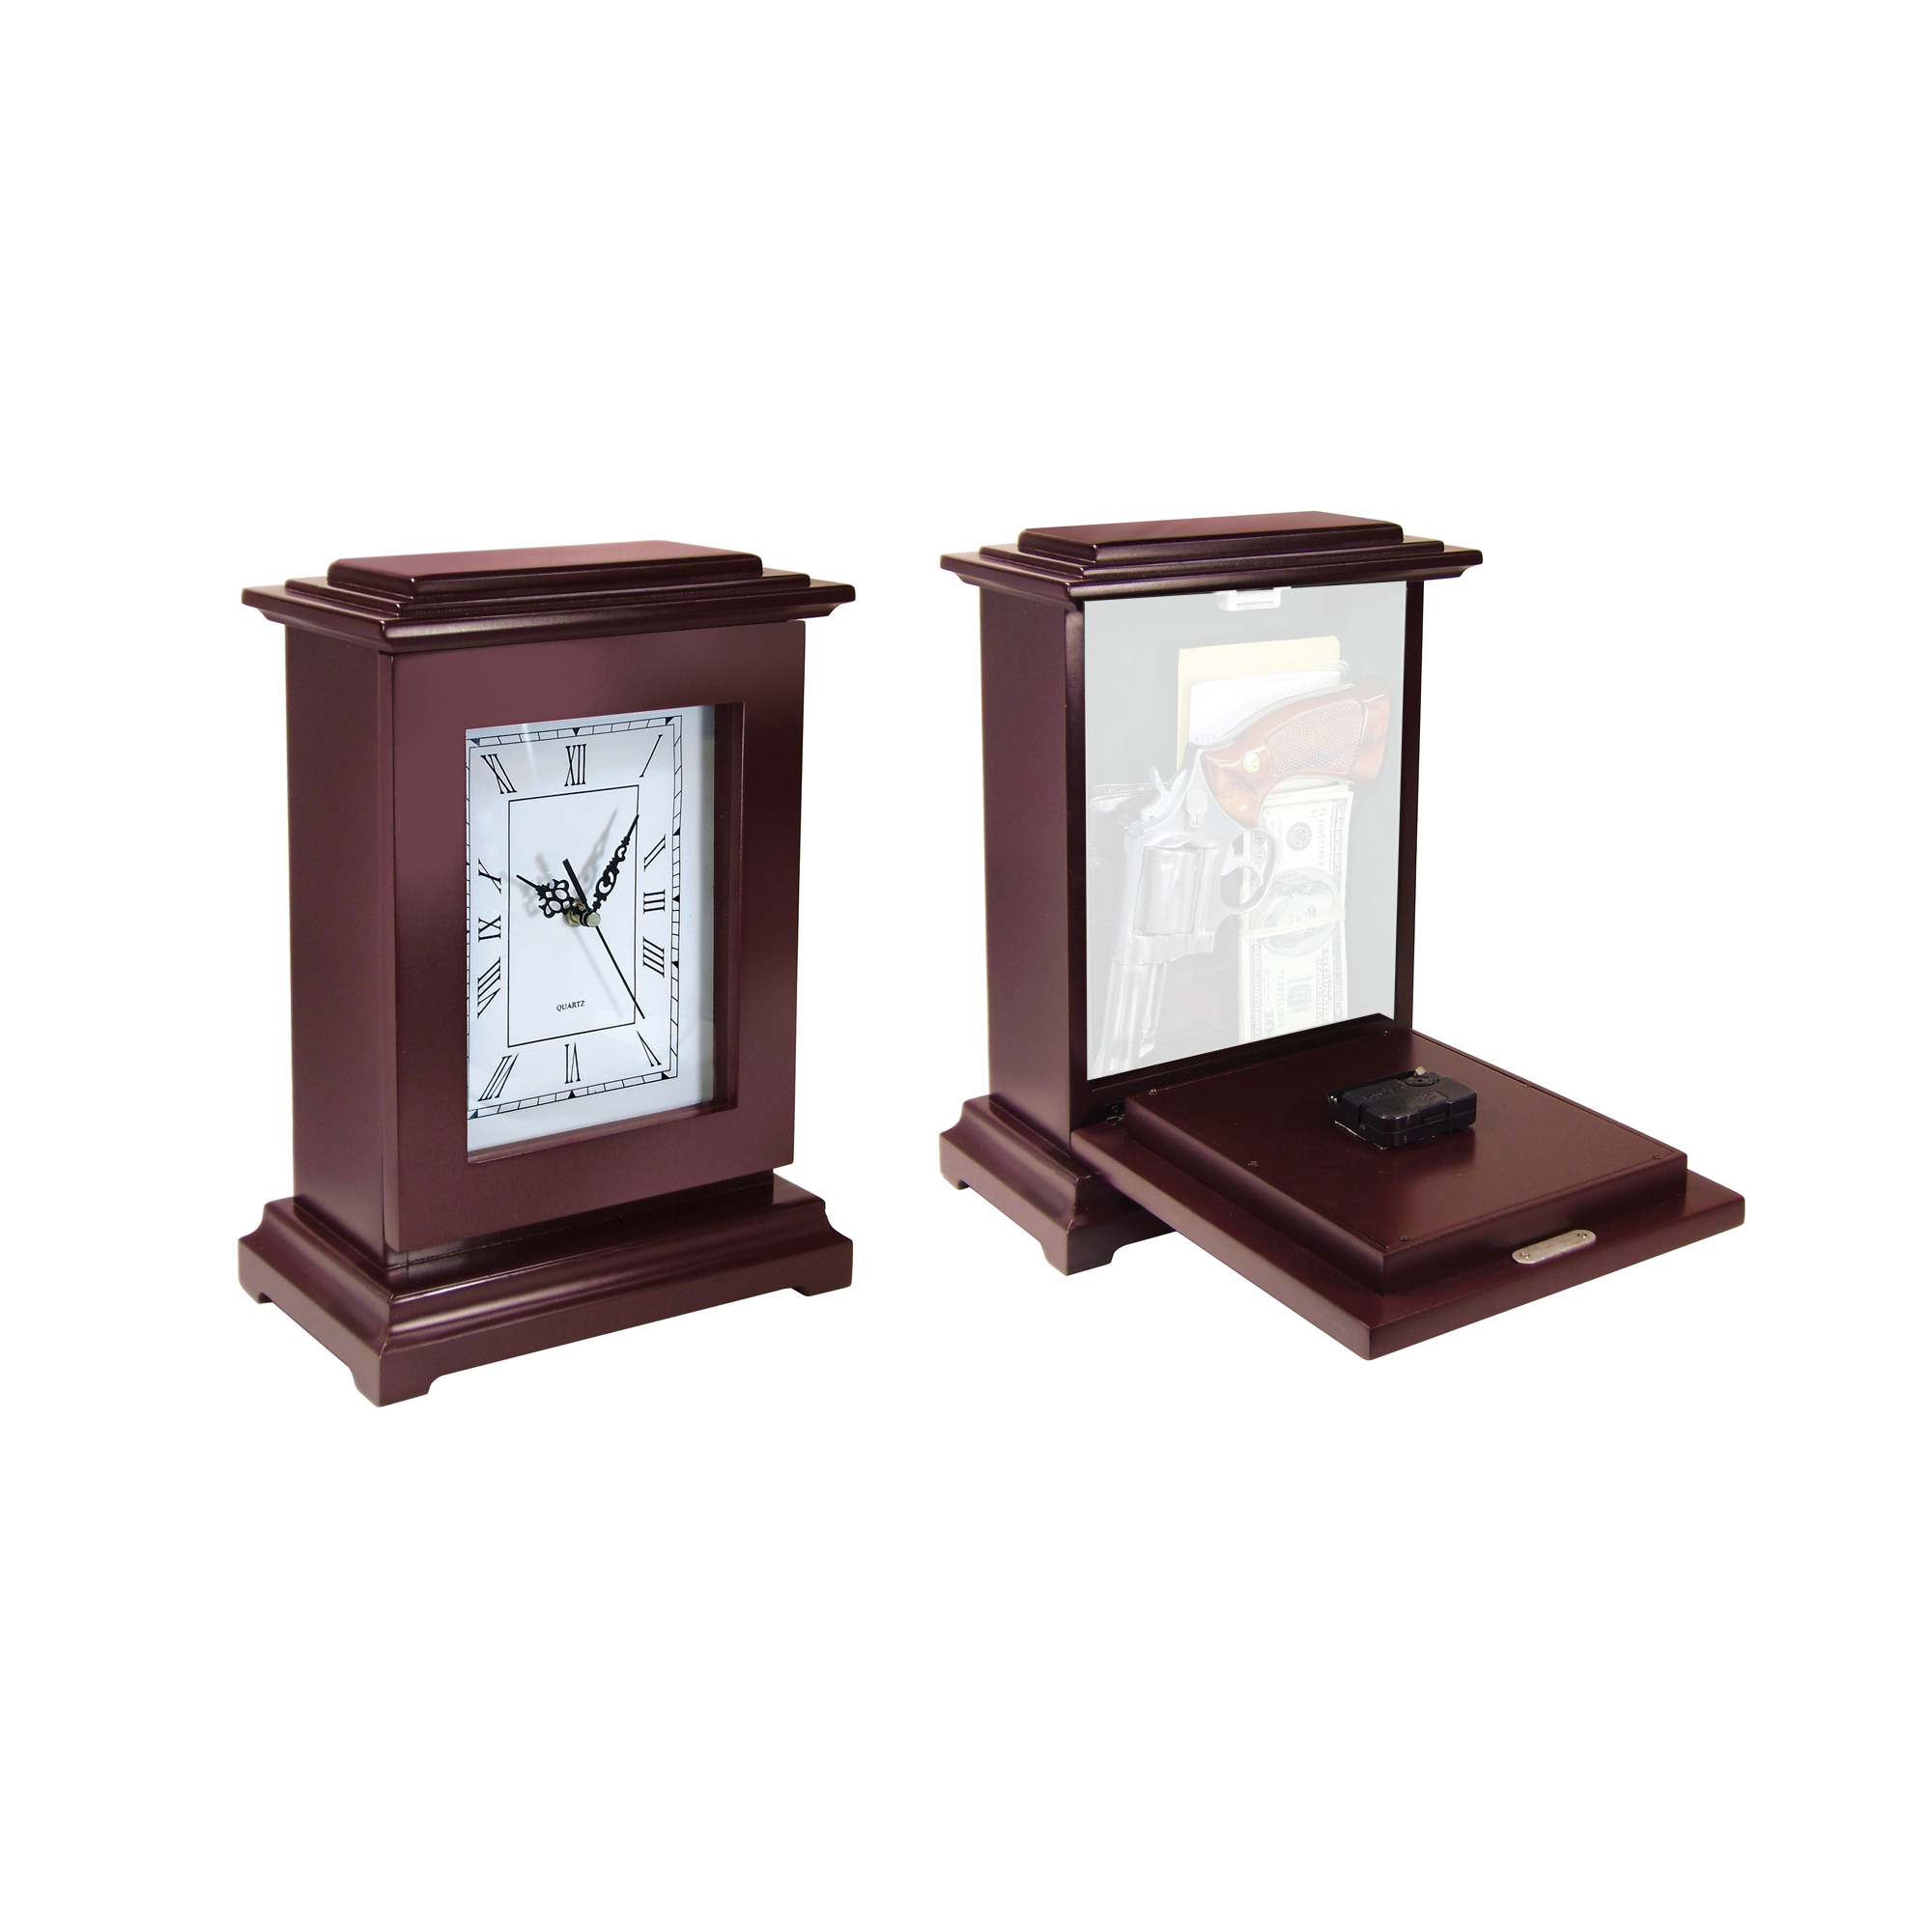 """This Gun Concealment Clock features solid wood construction and a magnetically latched"""" hinged front panel. Holds a large handgun and other valuables."""